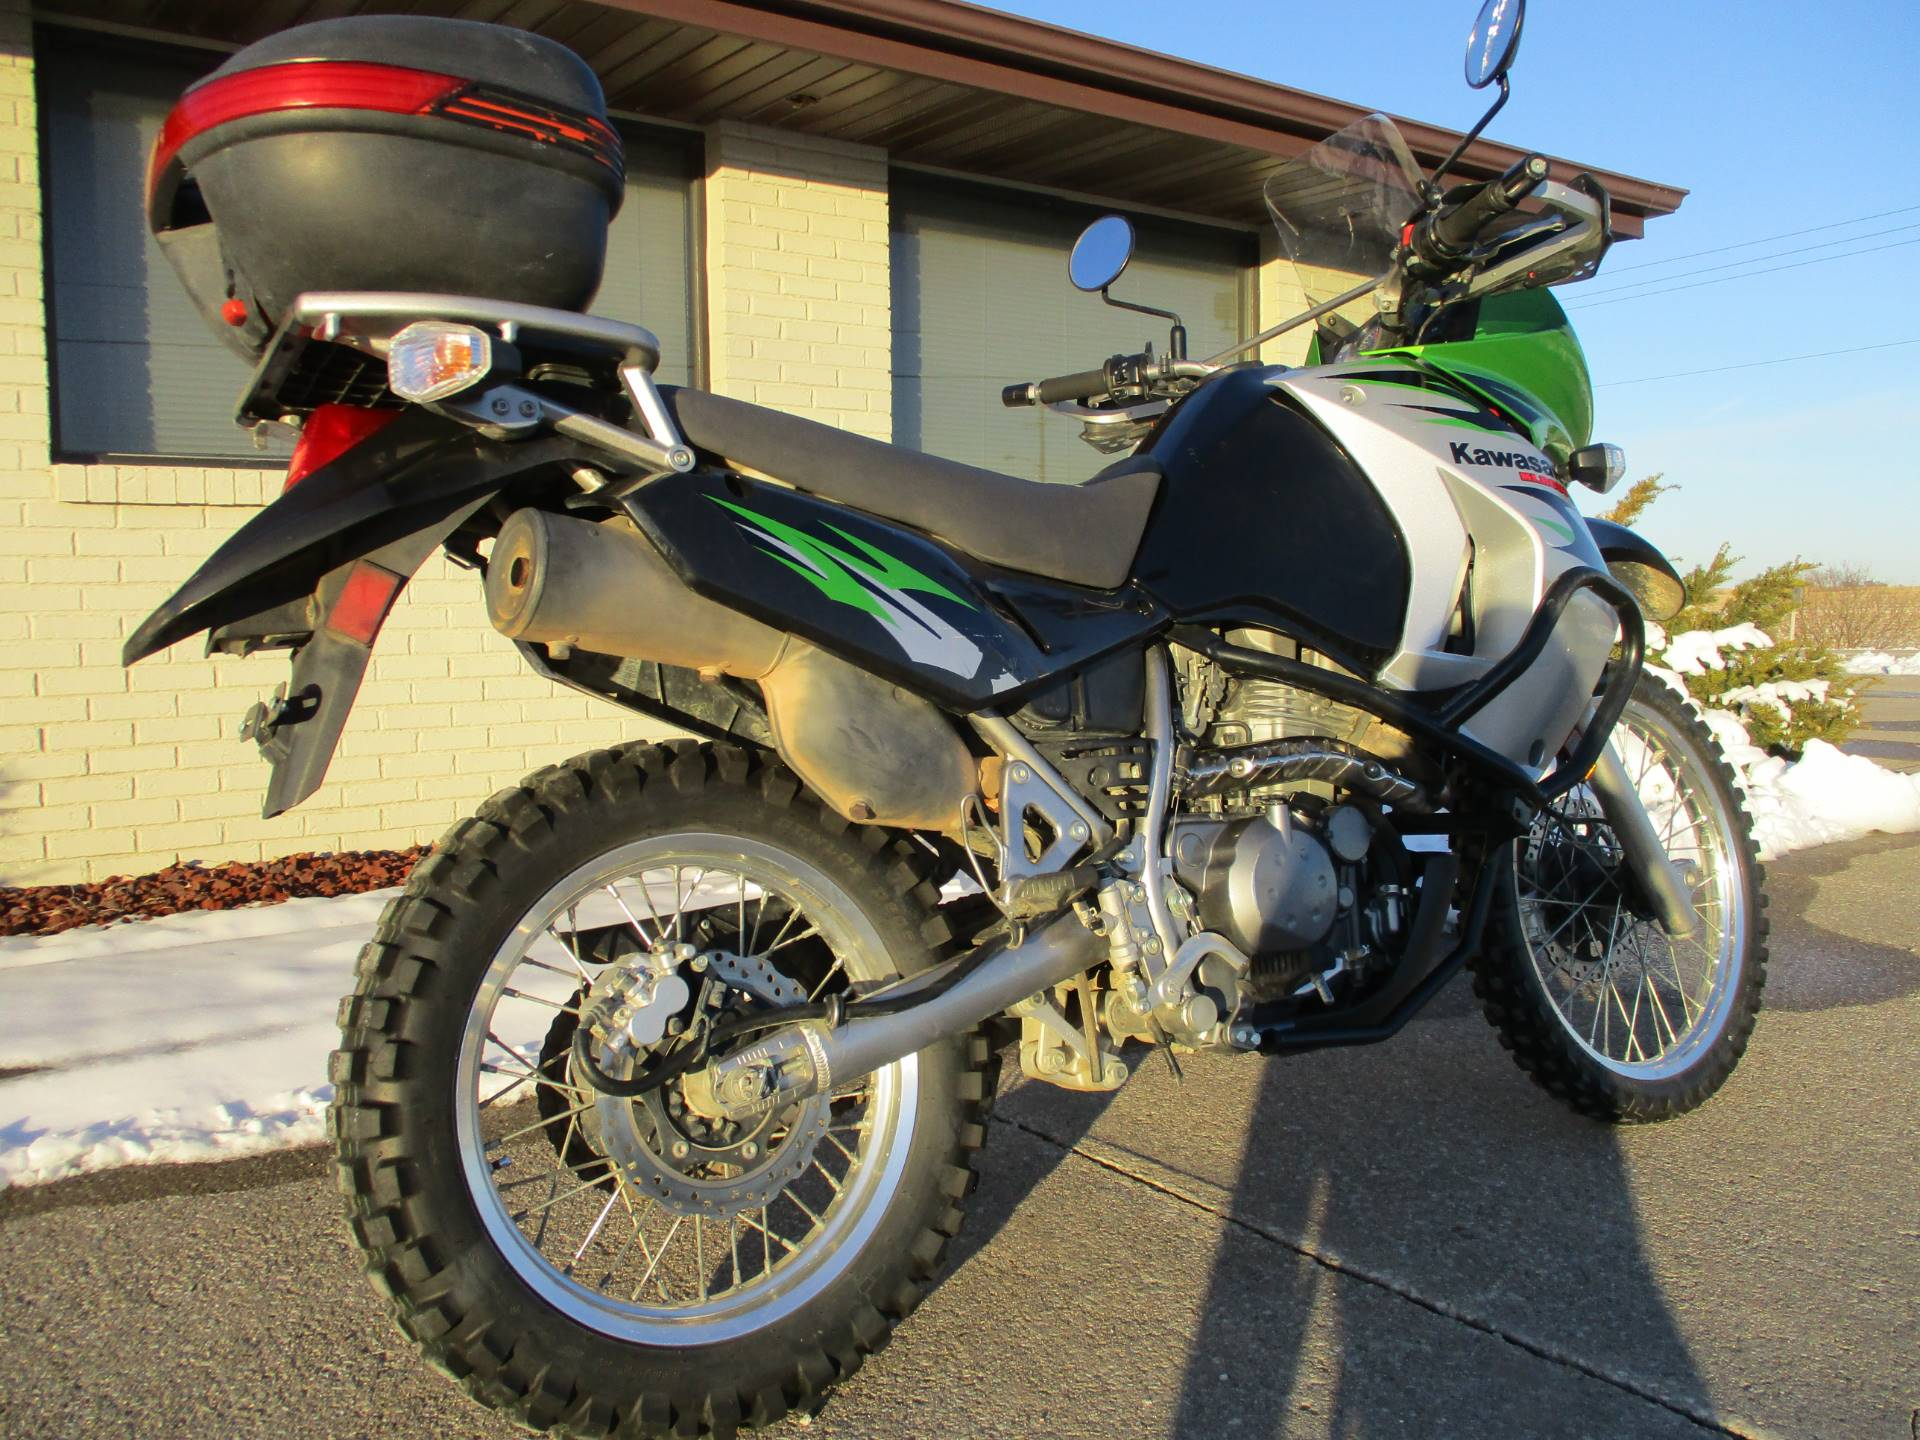 2008 Kawasaki KLR650 in Winterset, Iowa - Photo 5